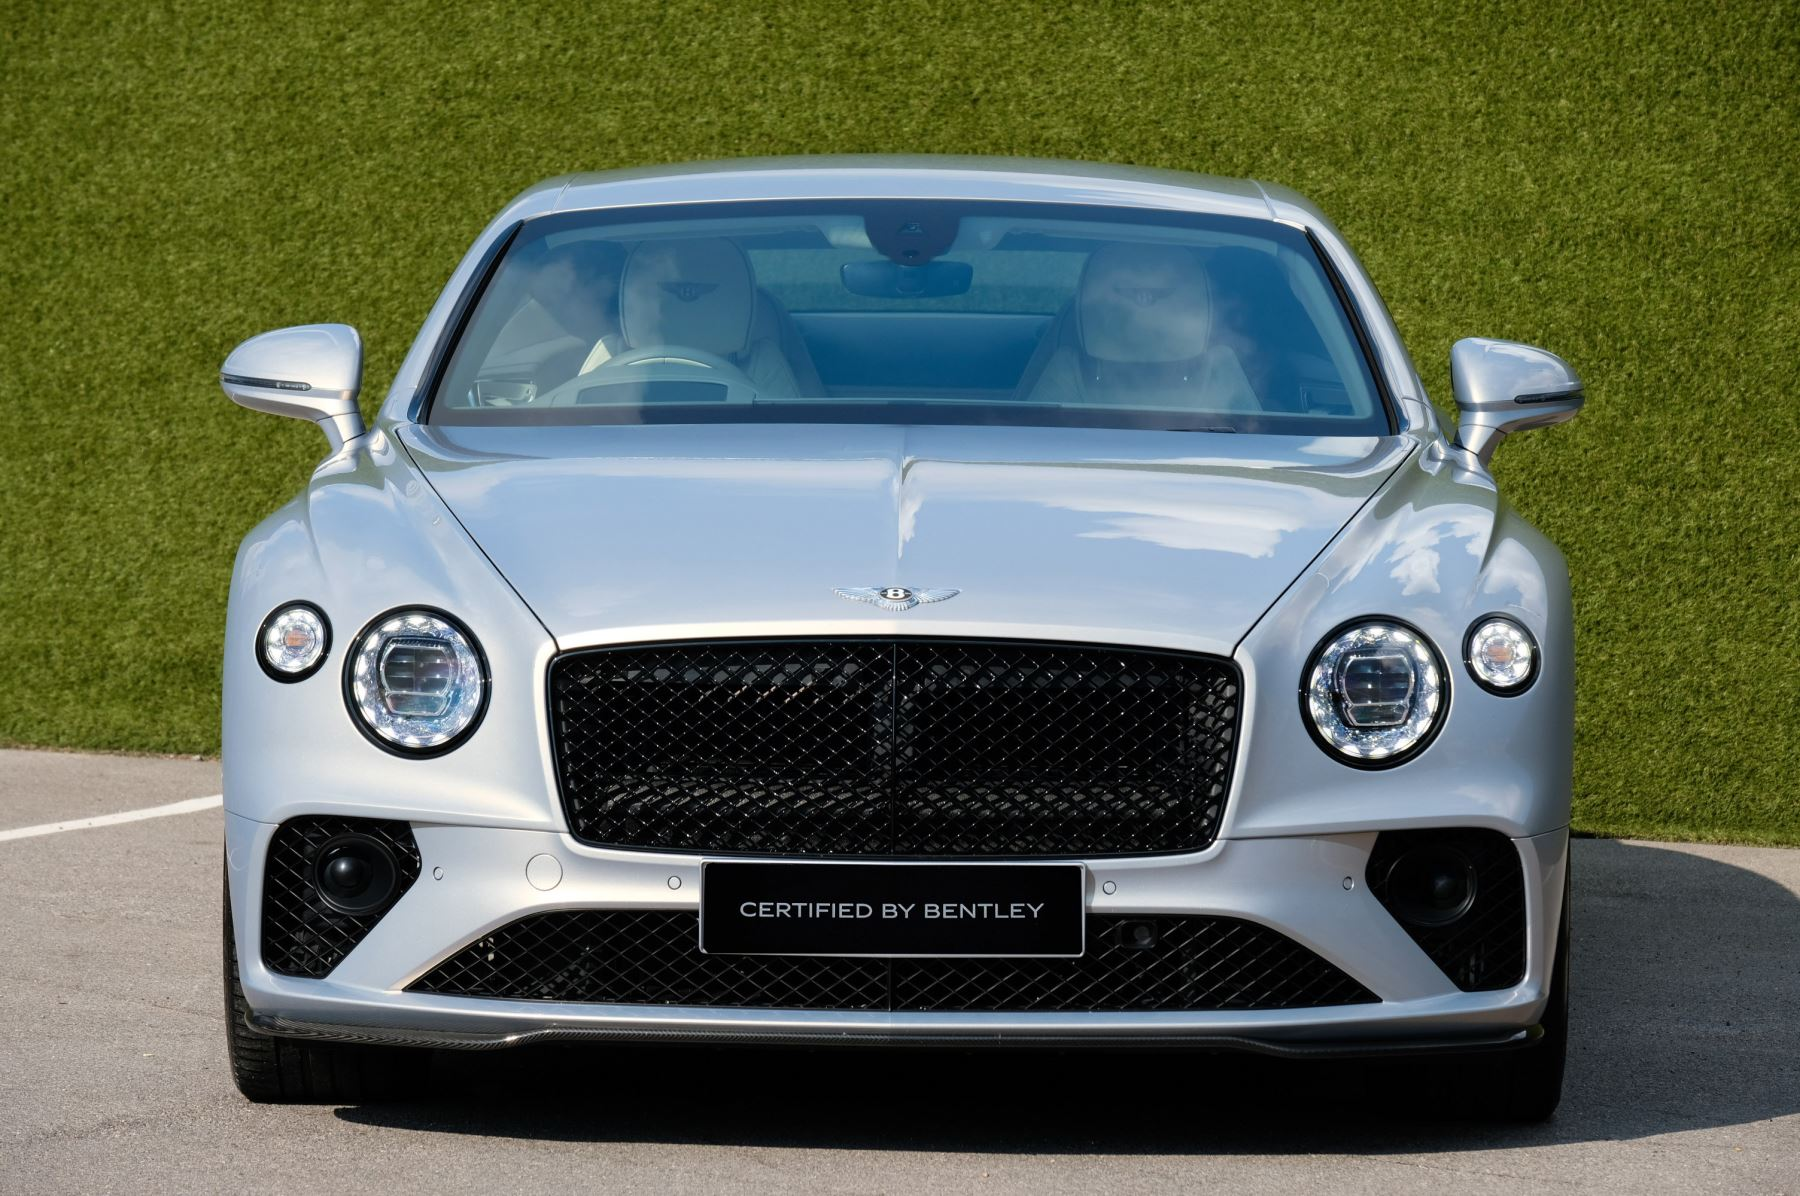 Bentley Continental GT 4.0 V8 - Mulliner Driving Specification with Black Painted Wheels - Touring and Centenary Spec image 2